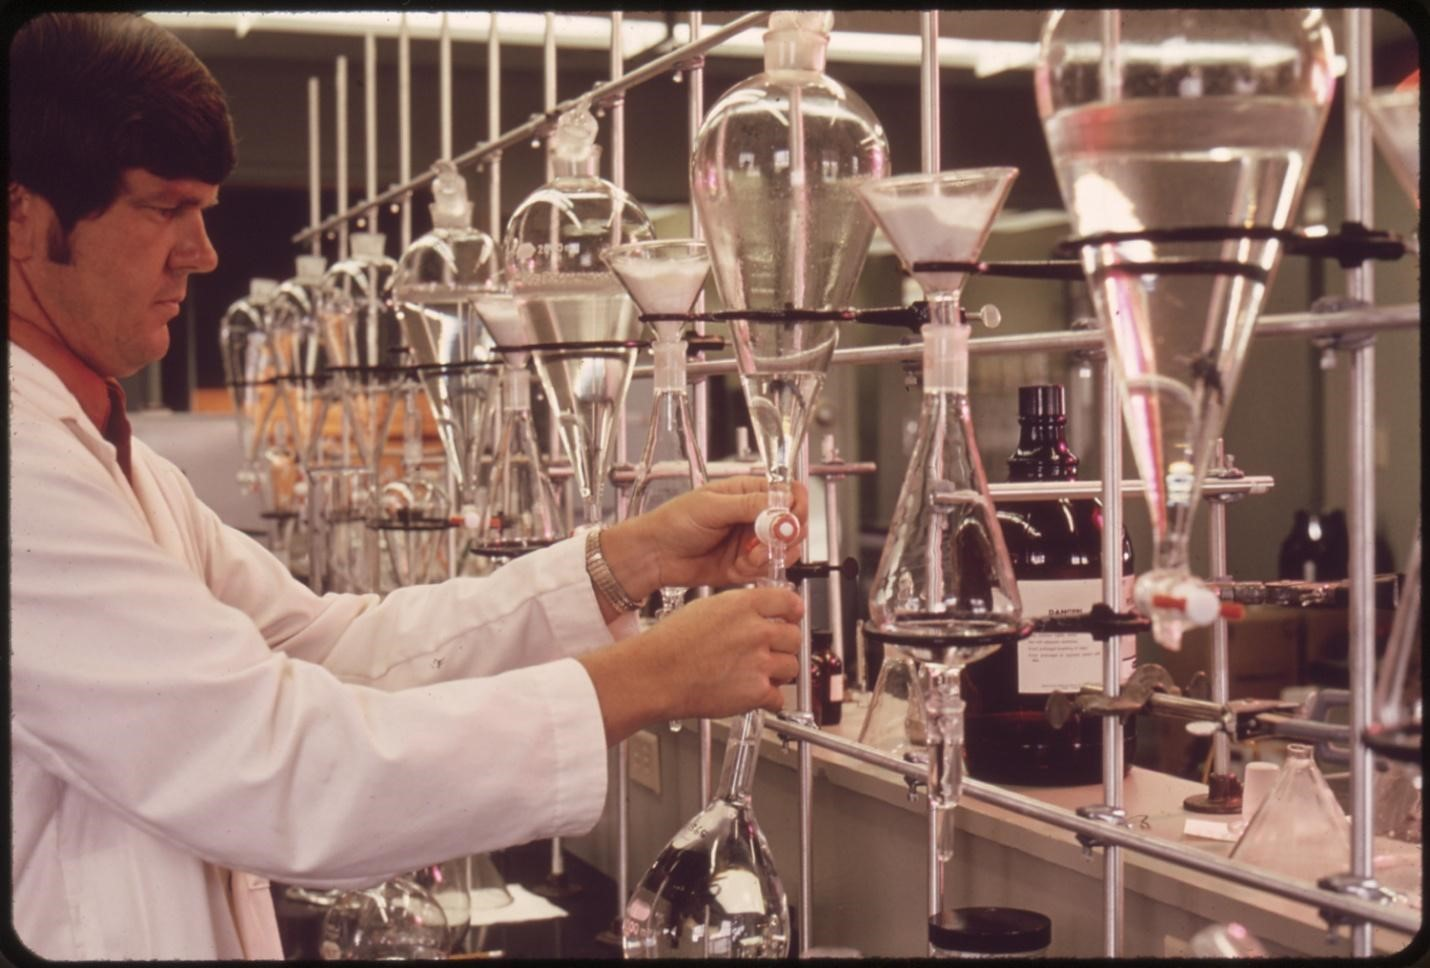 What does working as an FDA chemist involve